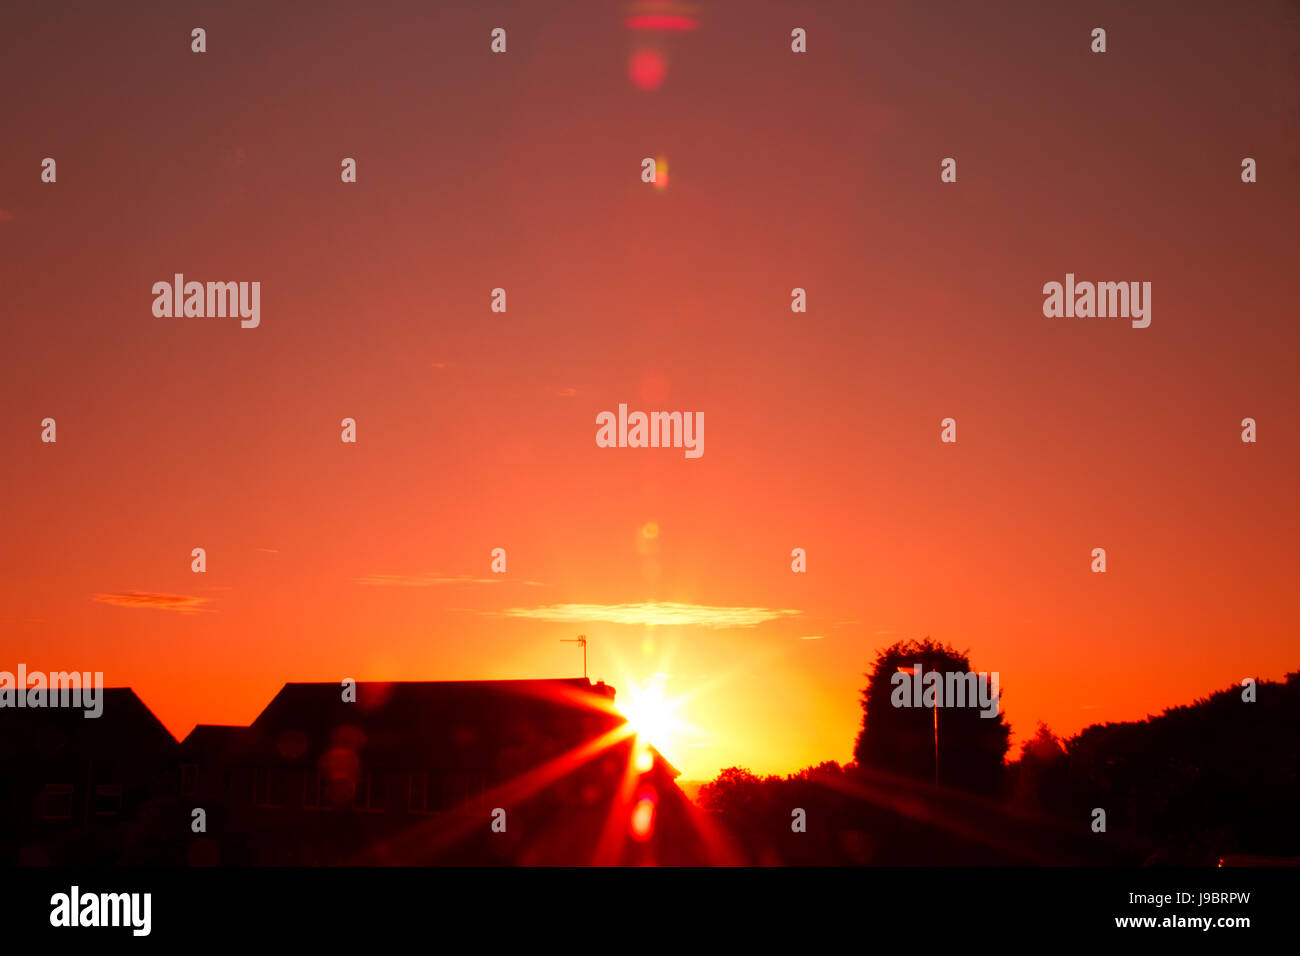 Red Sunset on an almost cloudless sky, with sun flair on the lens creating a warm feel. - Stock Image